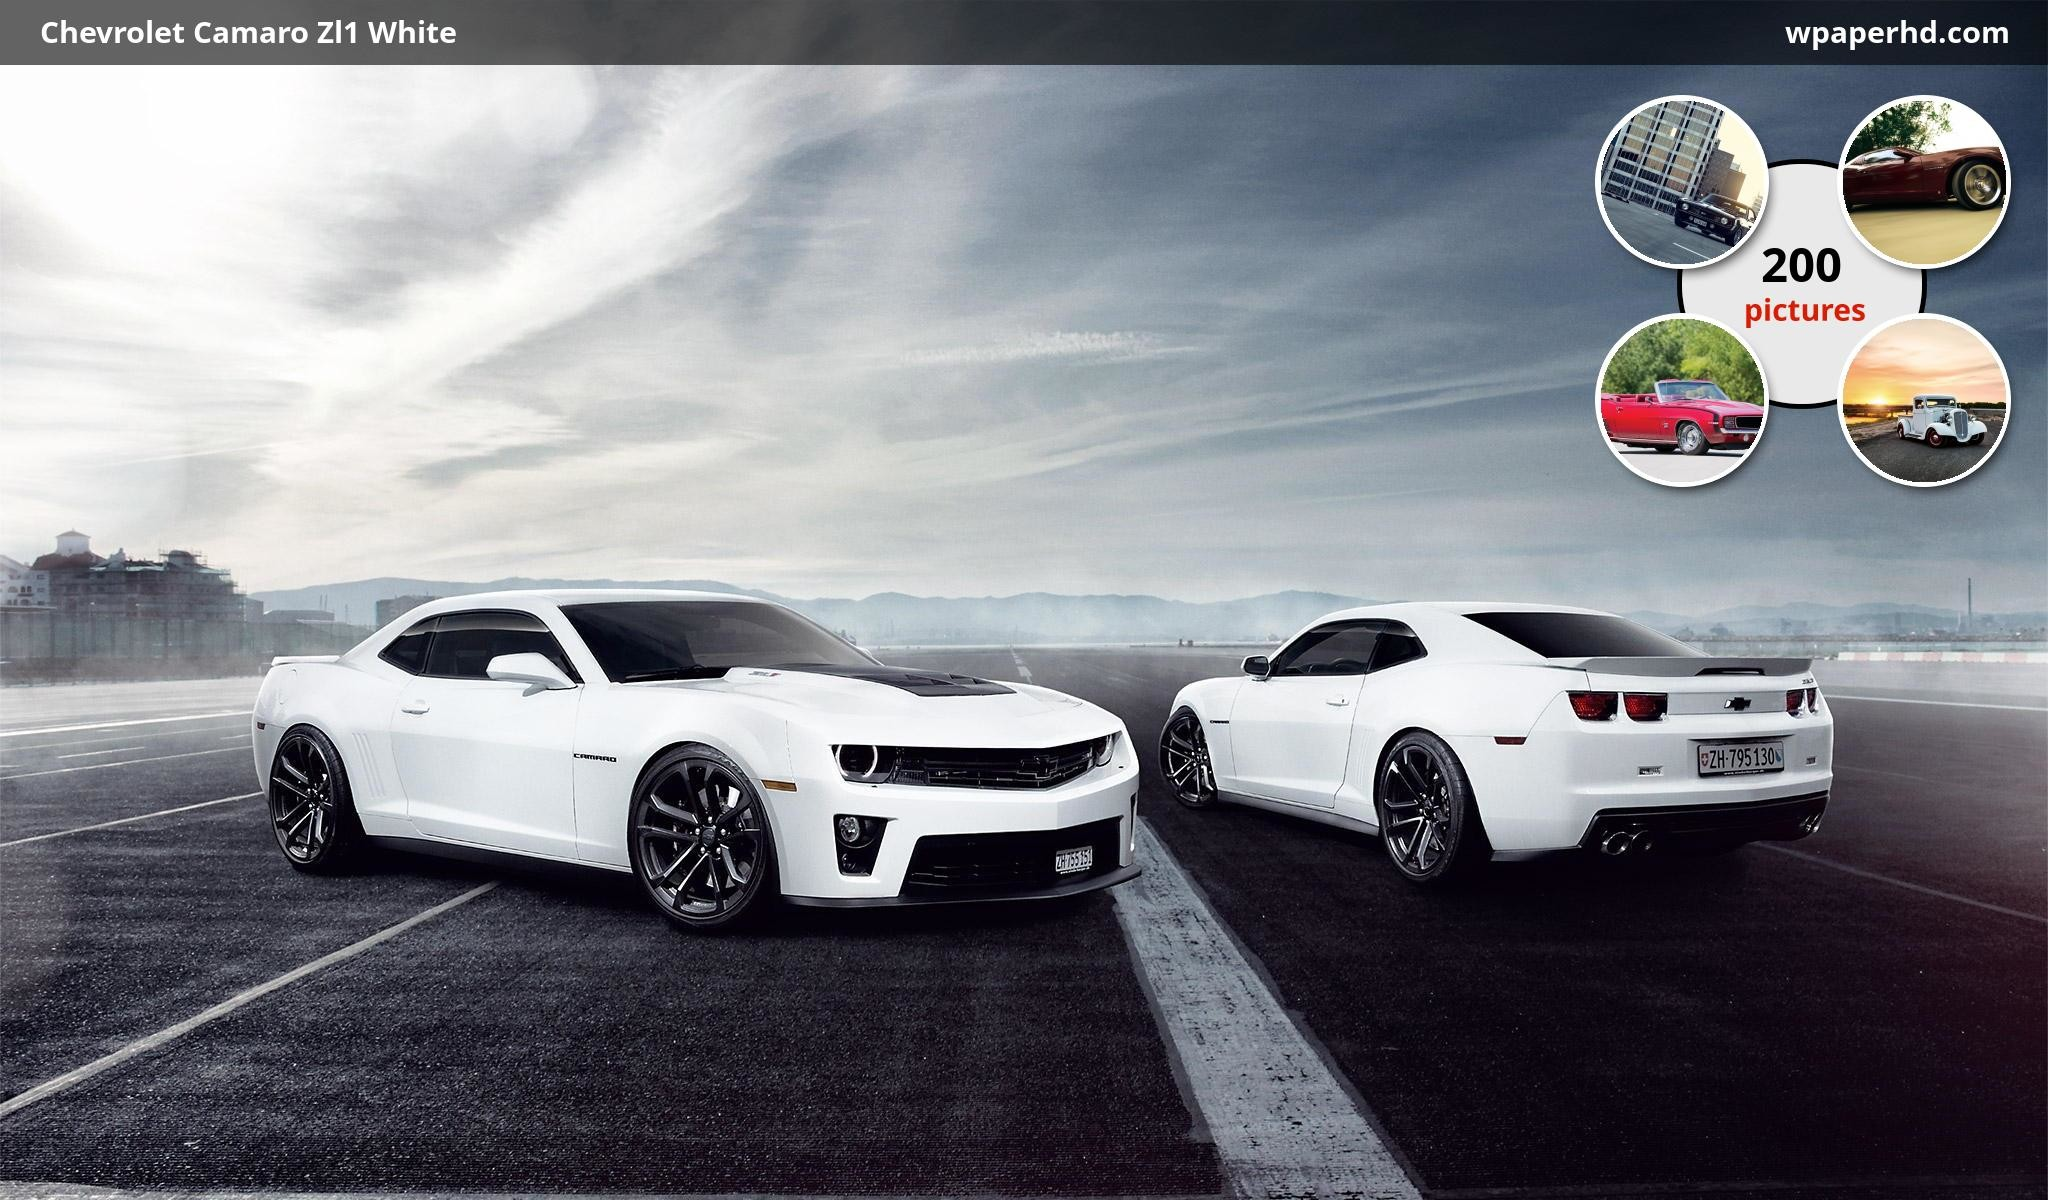 Res: 2048x1200, Description Chevrolet Camaro Zl1 White wallpaper from Chevrolet category.  You are on page with Chevrolet Camaro Zl1 White wallpaper ...